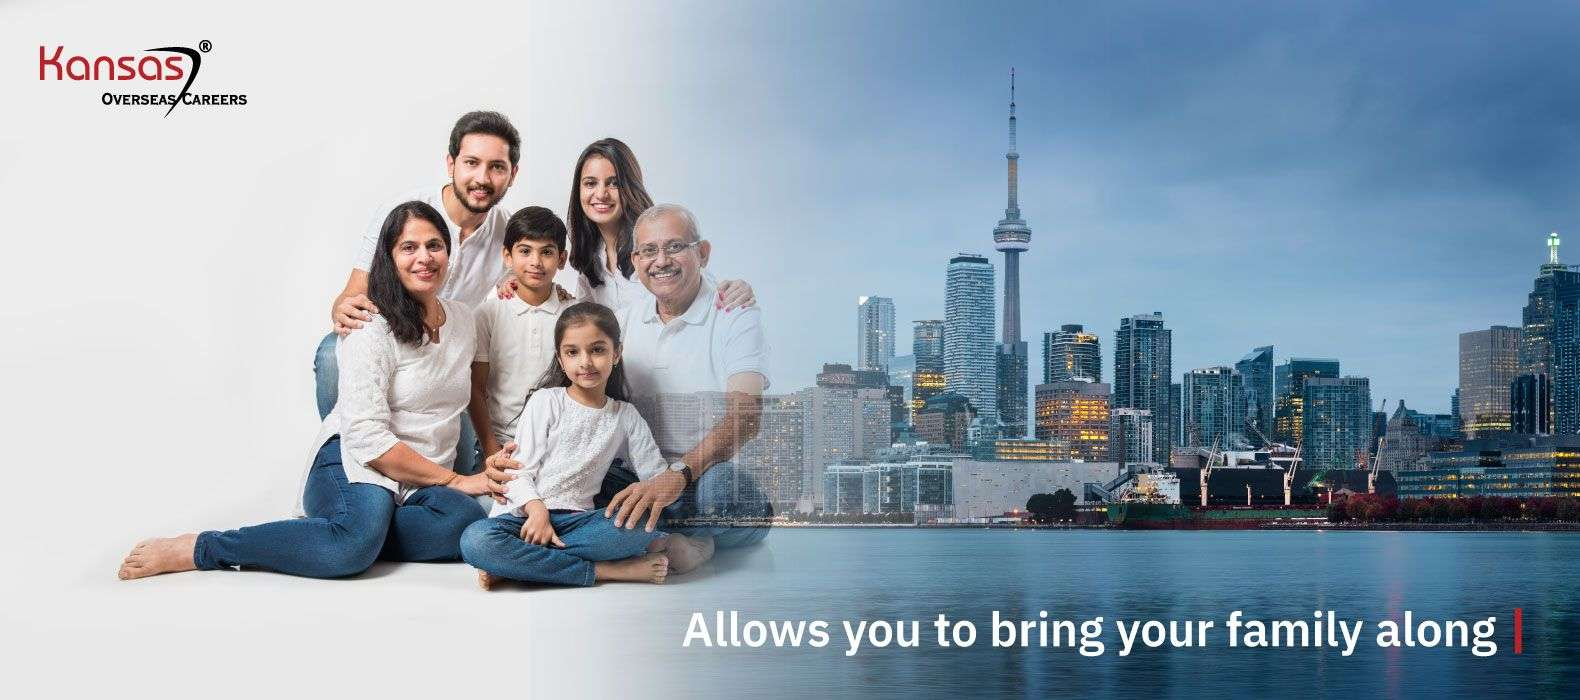 Allows-you-to-bring-your-family-along